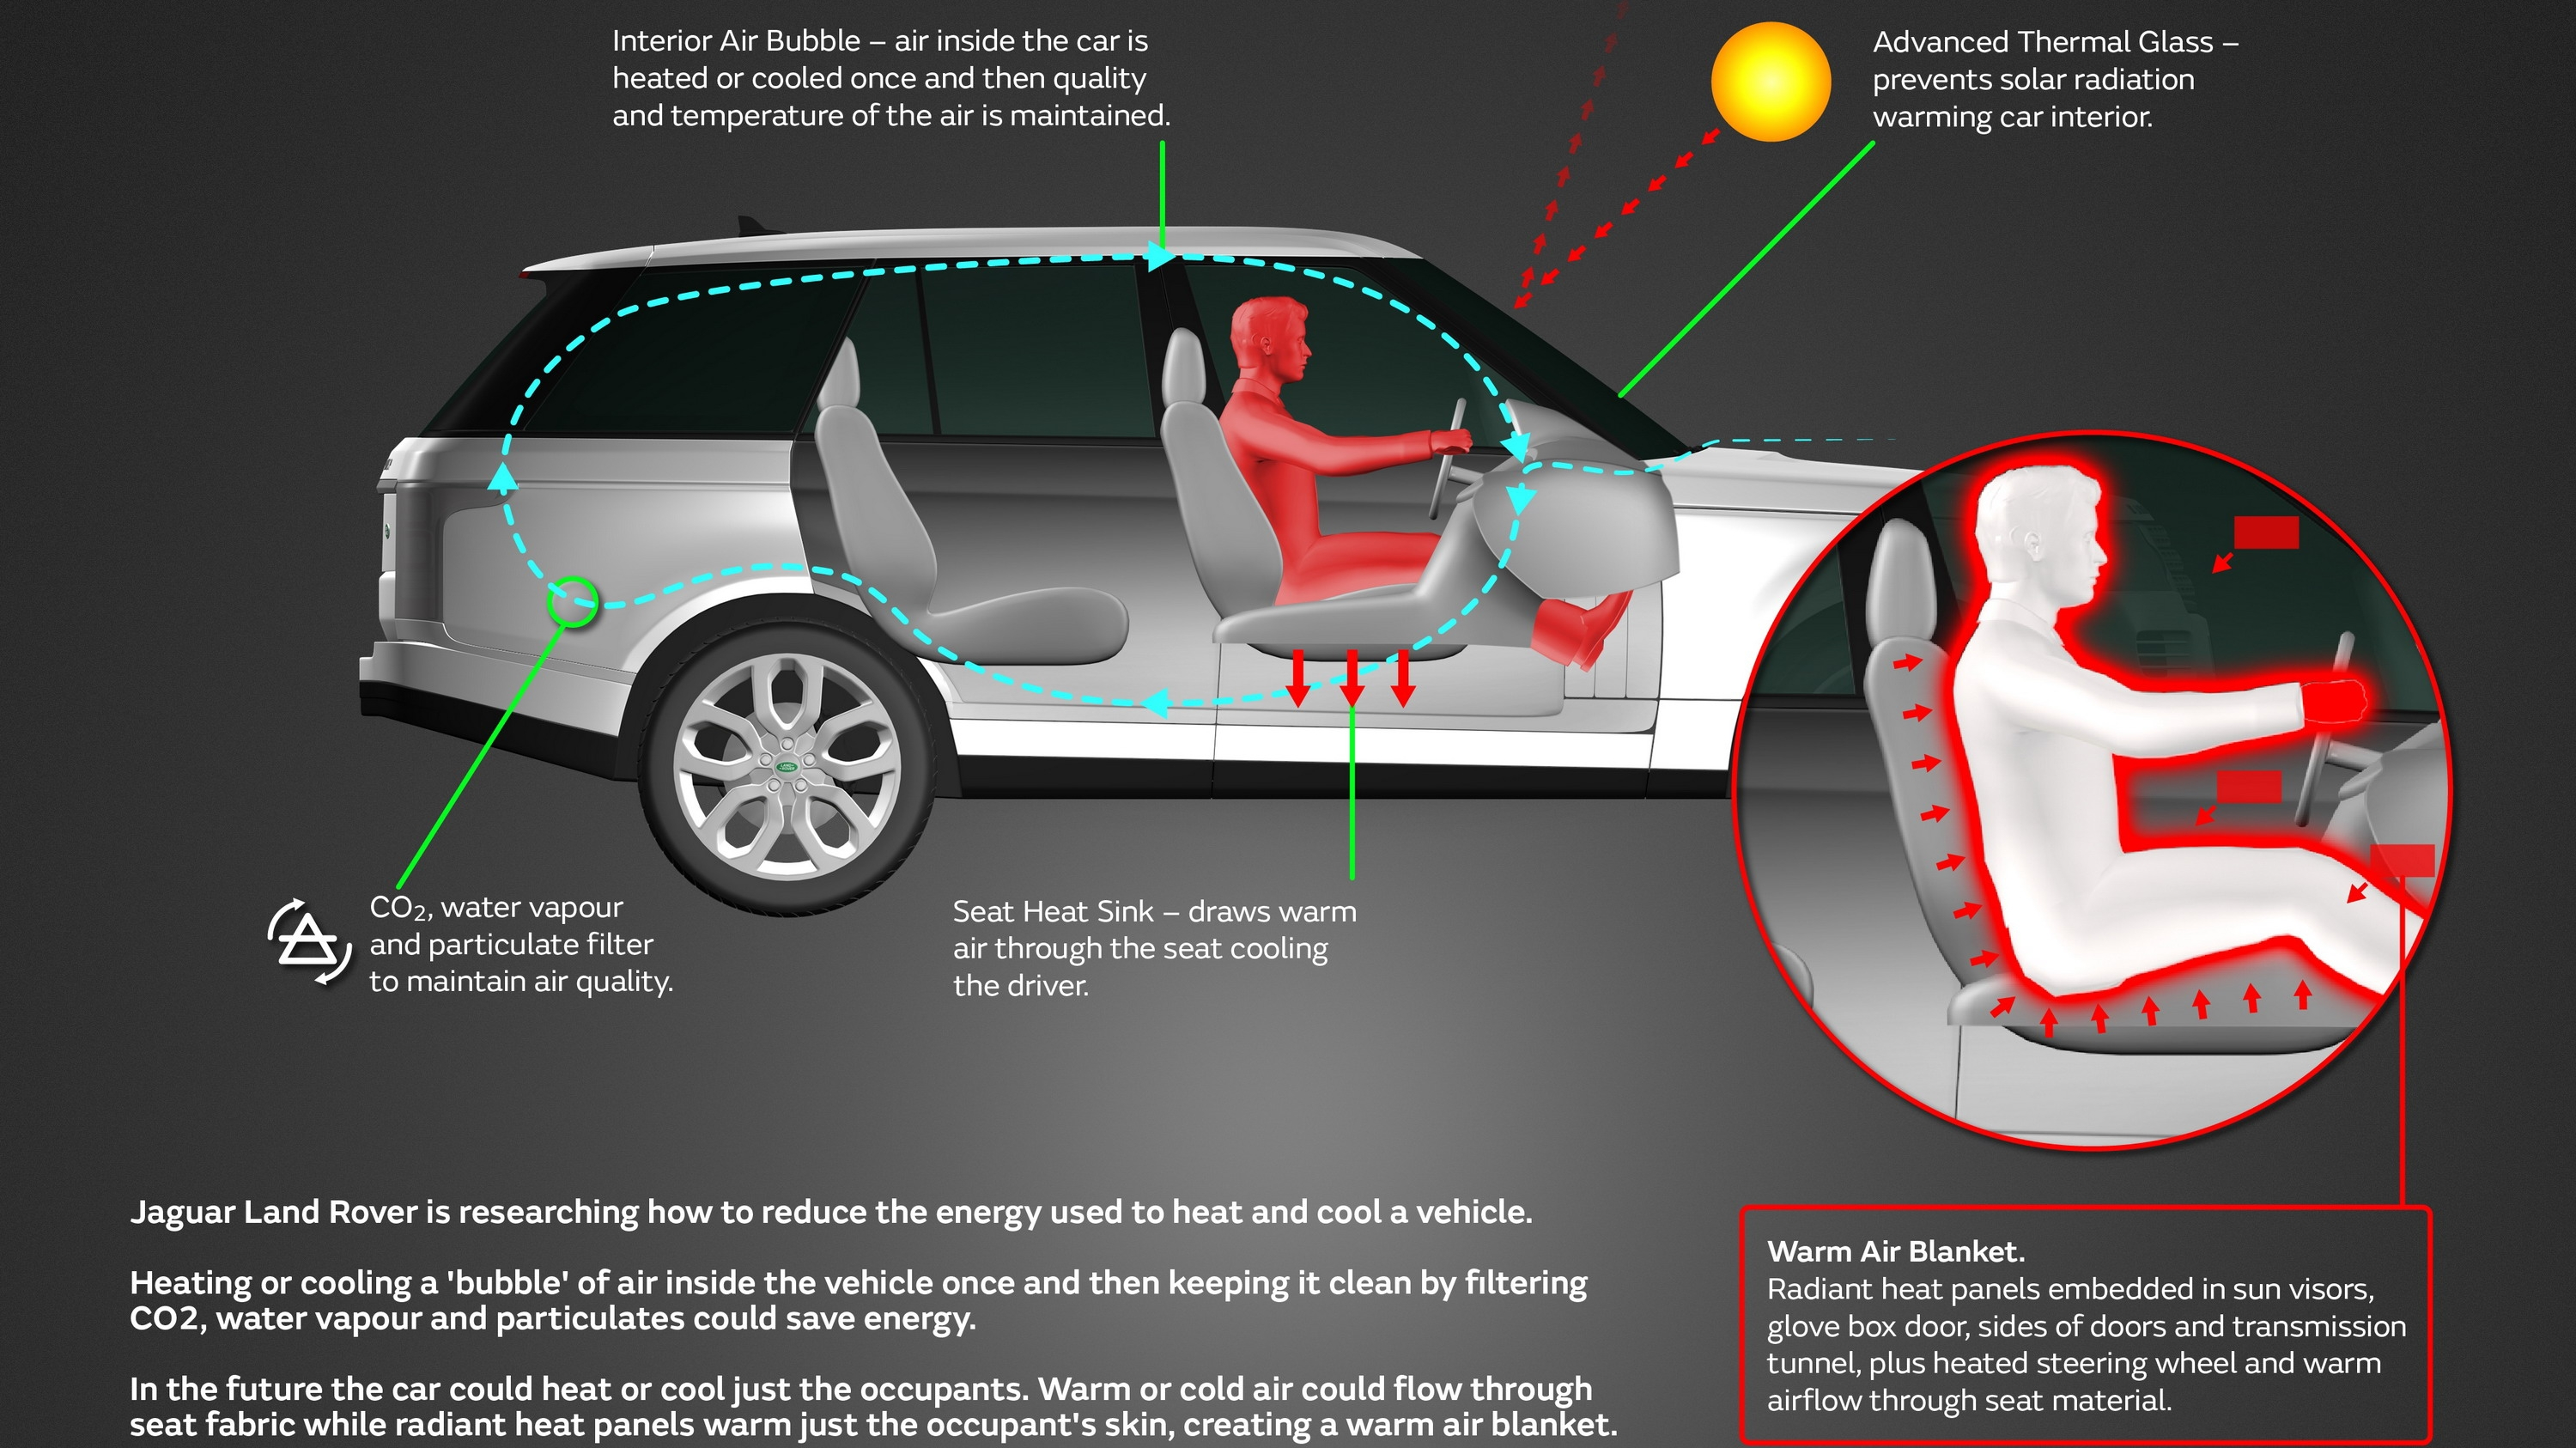 ac to dc convertor wiring diagram jaguar land rover reveals  warm air blanket  research news  jaguar land rover reveals  warm air blanket  research news